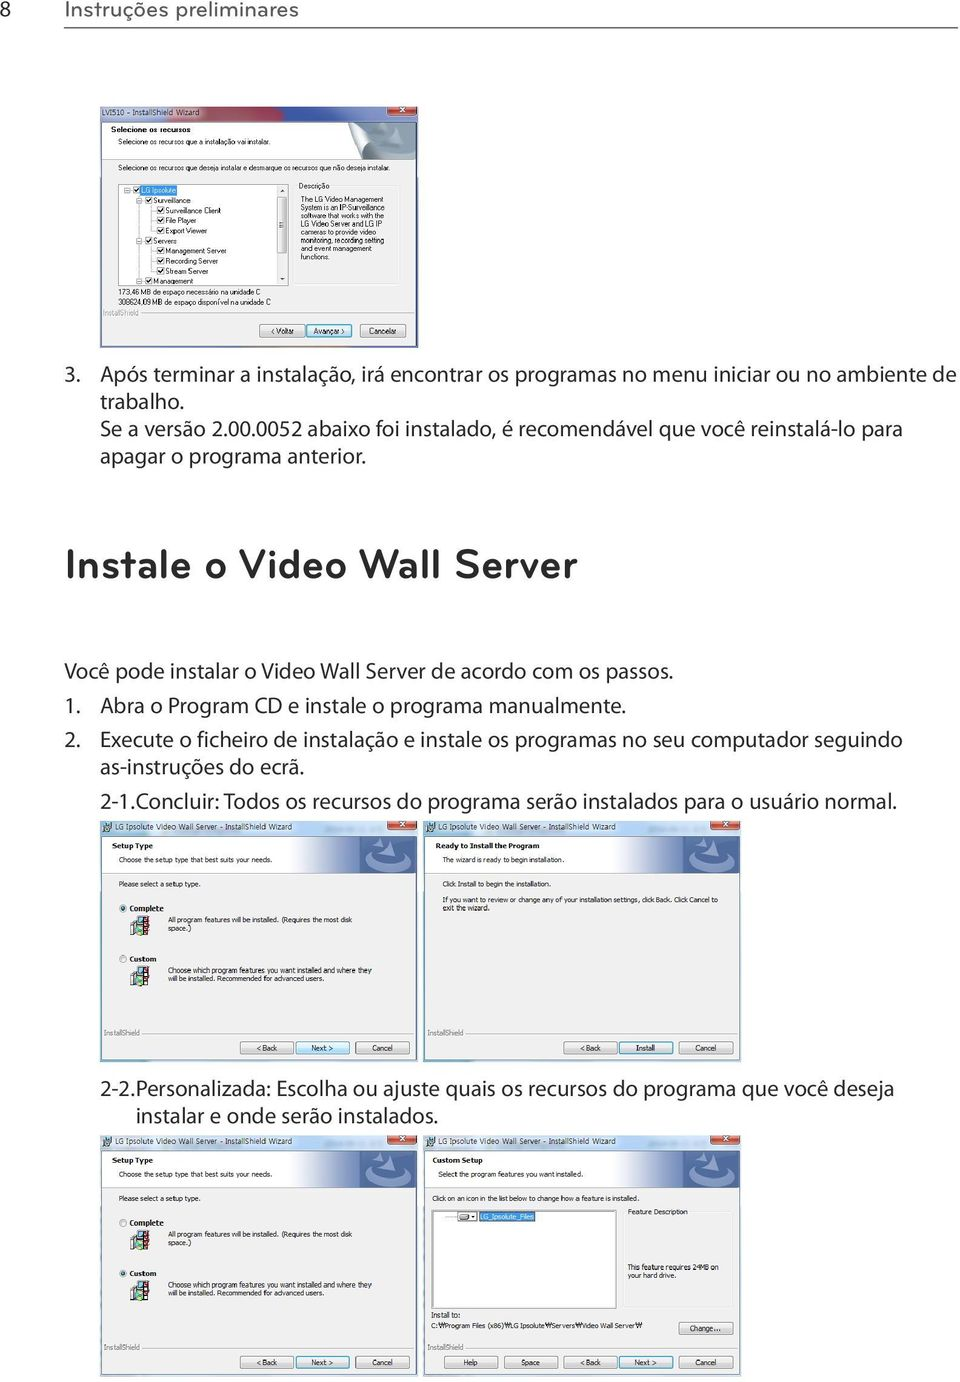 Instale o Video Wall Server Você pode instalar o Video Wall Server de acordo com os passos. 1. Abra o Program CD e instale o programa manualmente. 2.